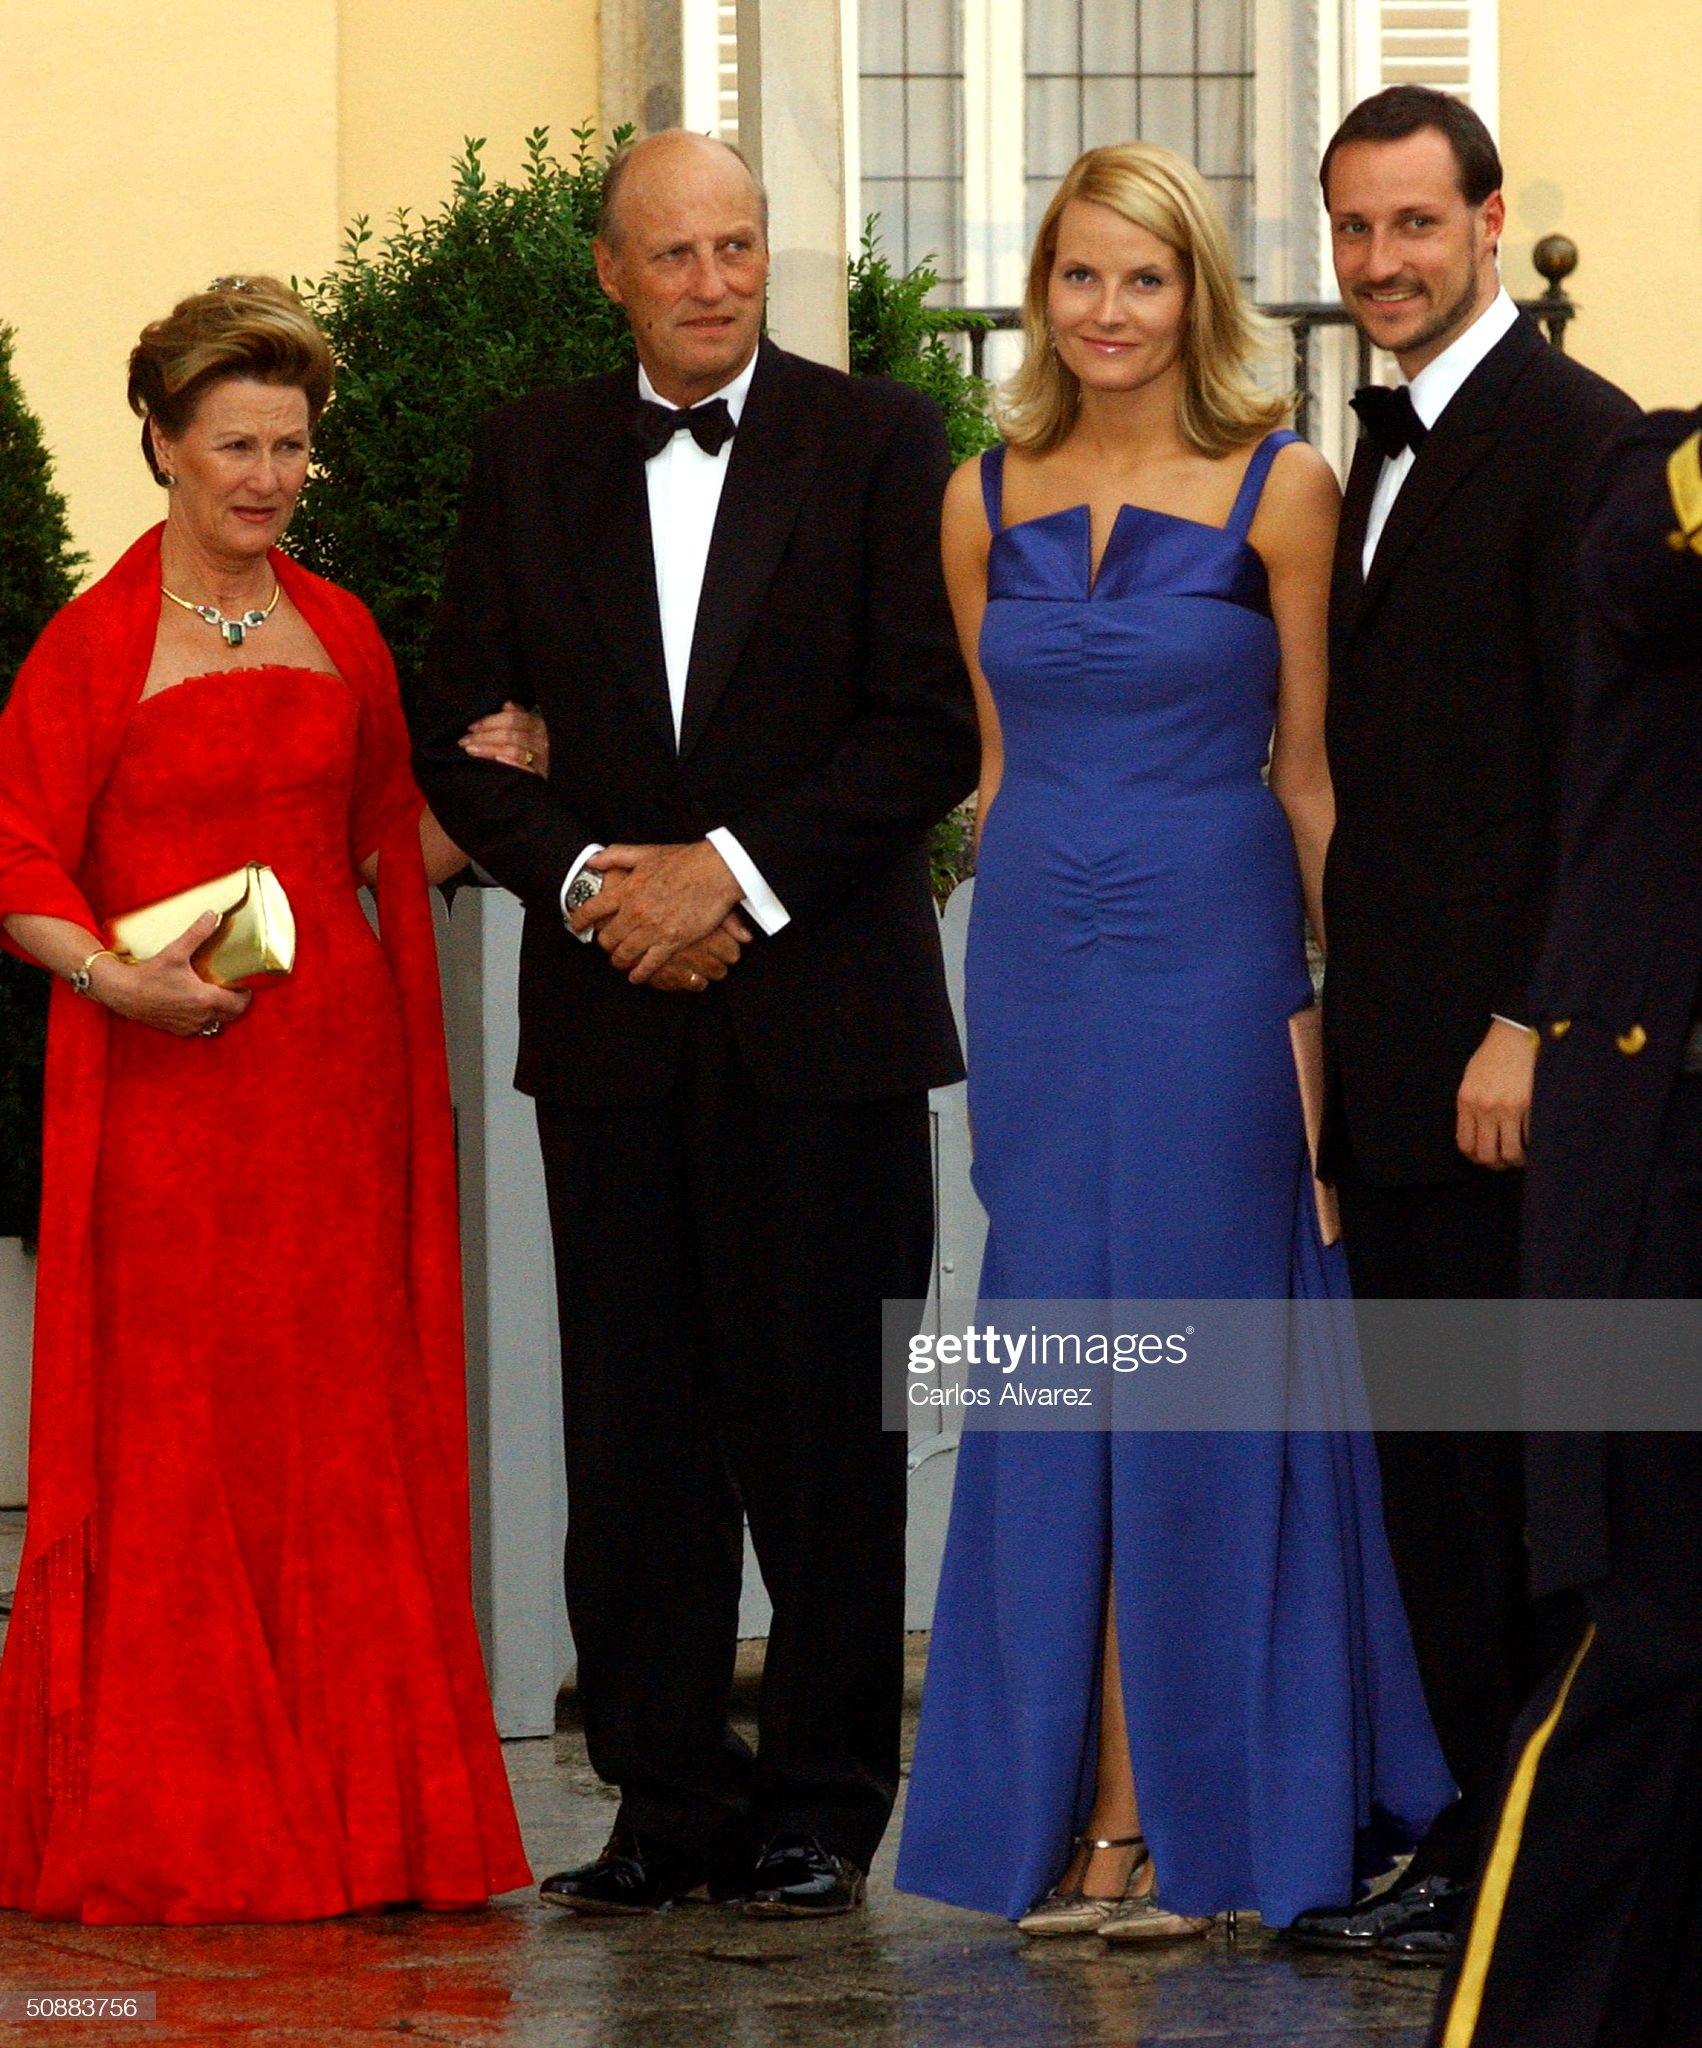 Gala Dinner at El Pardo Royal Palace In Preparation Spanish Wedding : News Photo